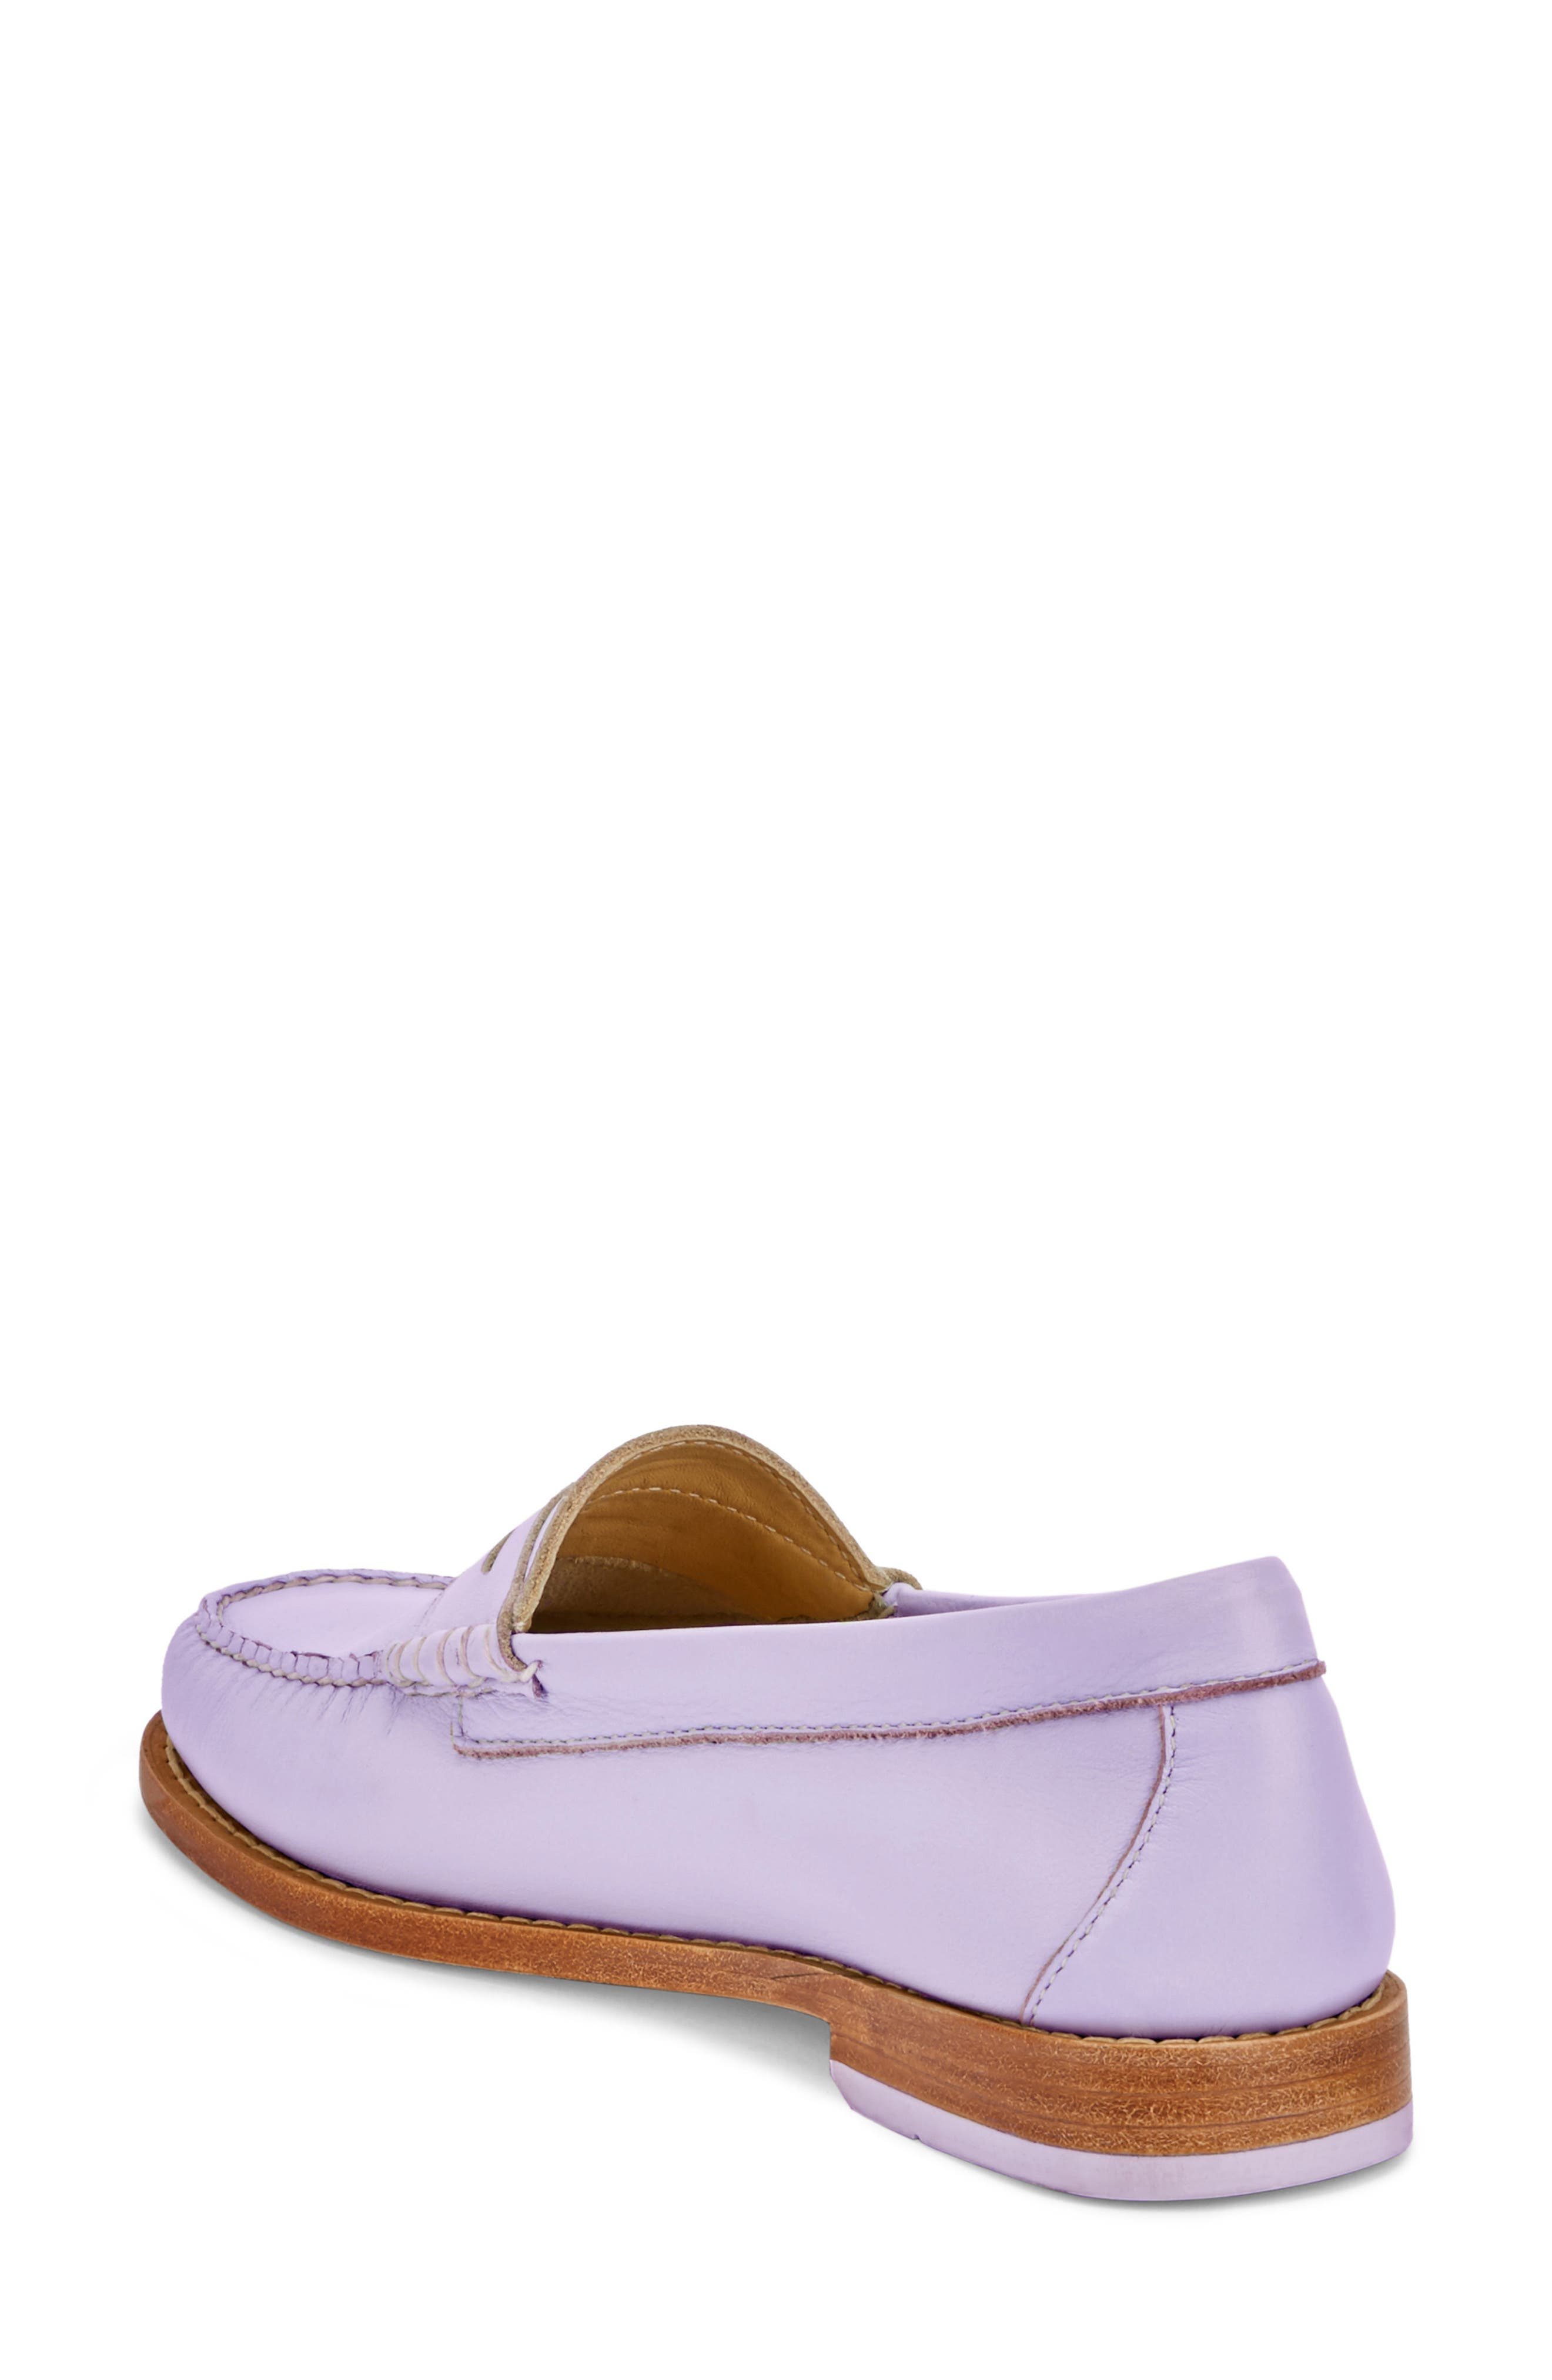 'Whitney' Loafer,                             Alternate thumbnail 2, color,                             Lilac Leather